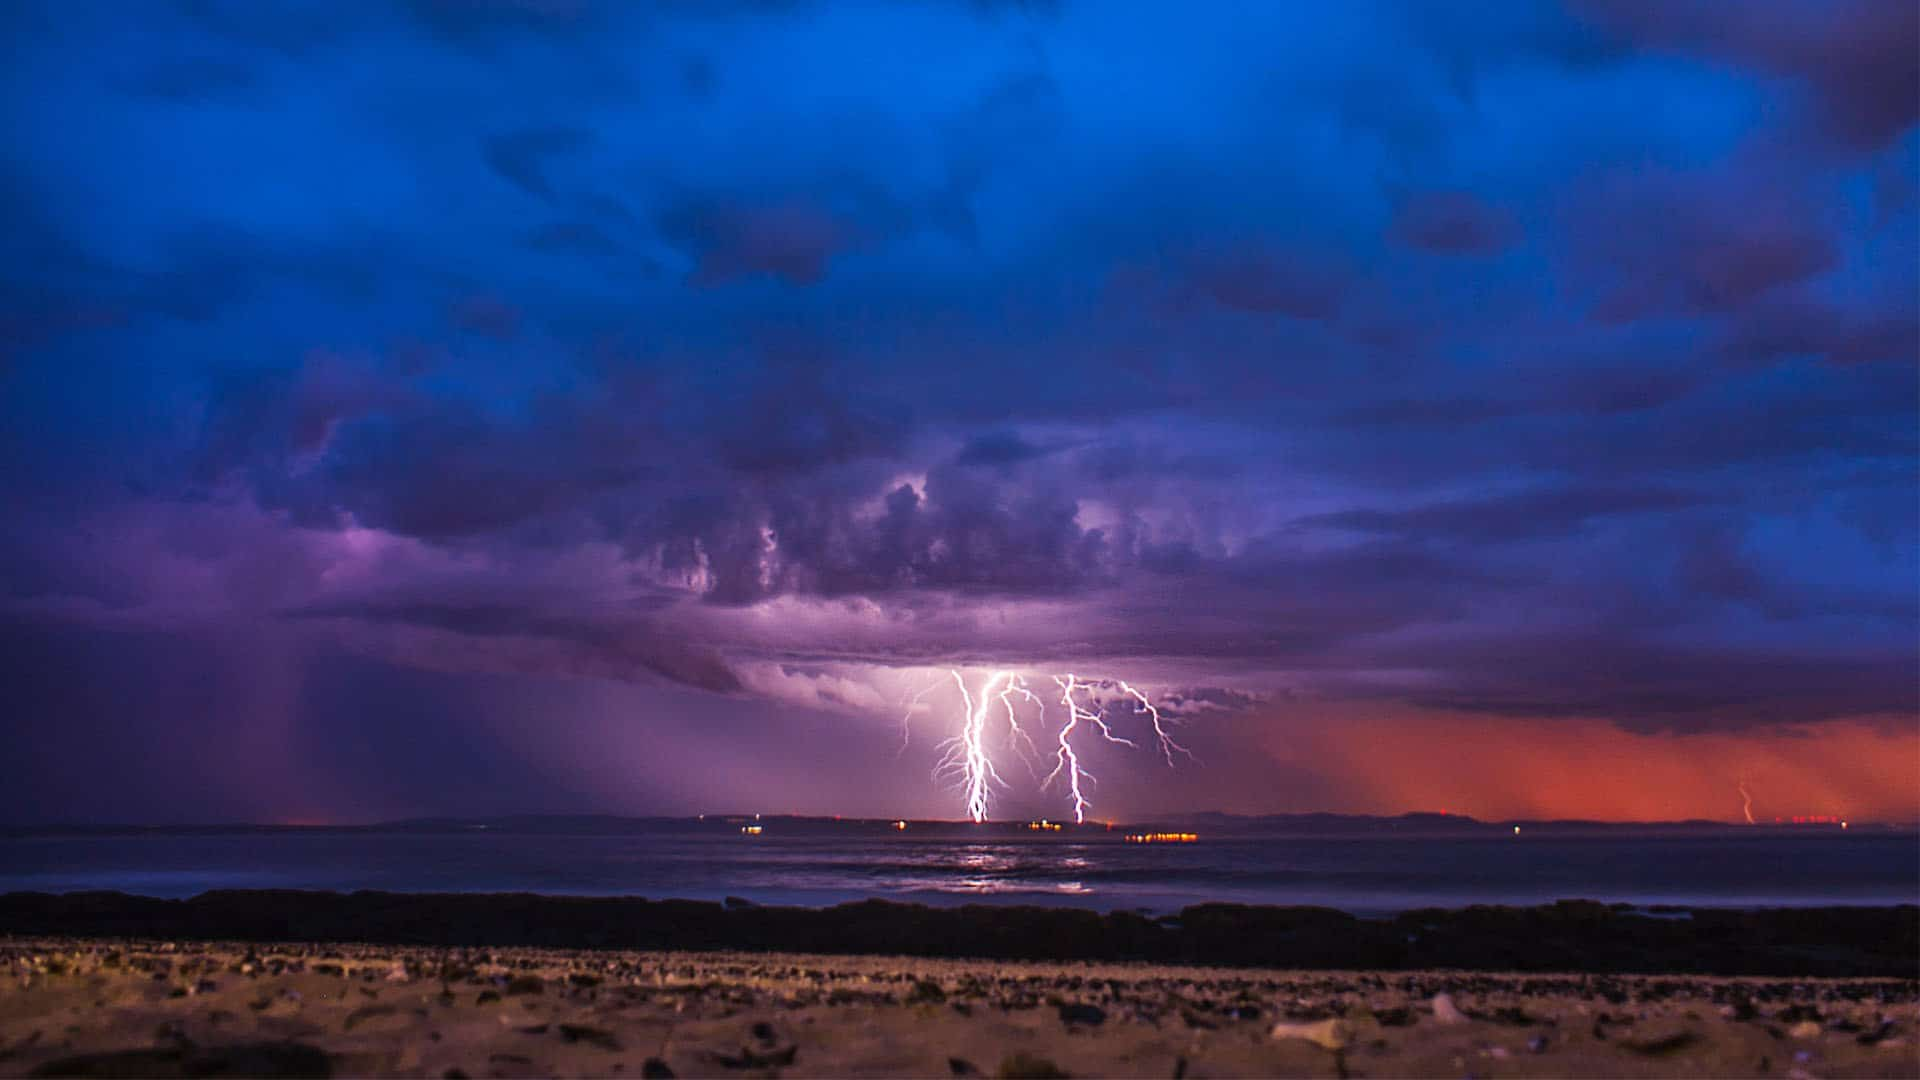 An image of a lightning storm in Jeffrey's Bay.